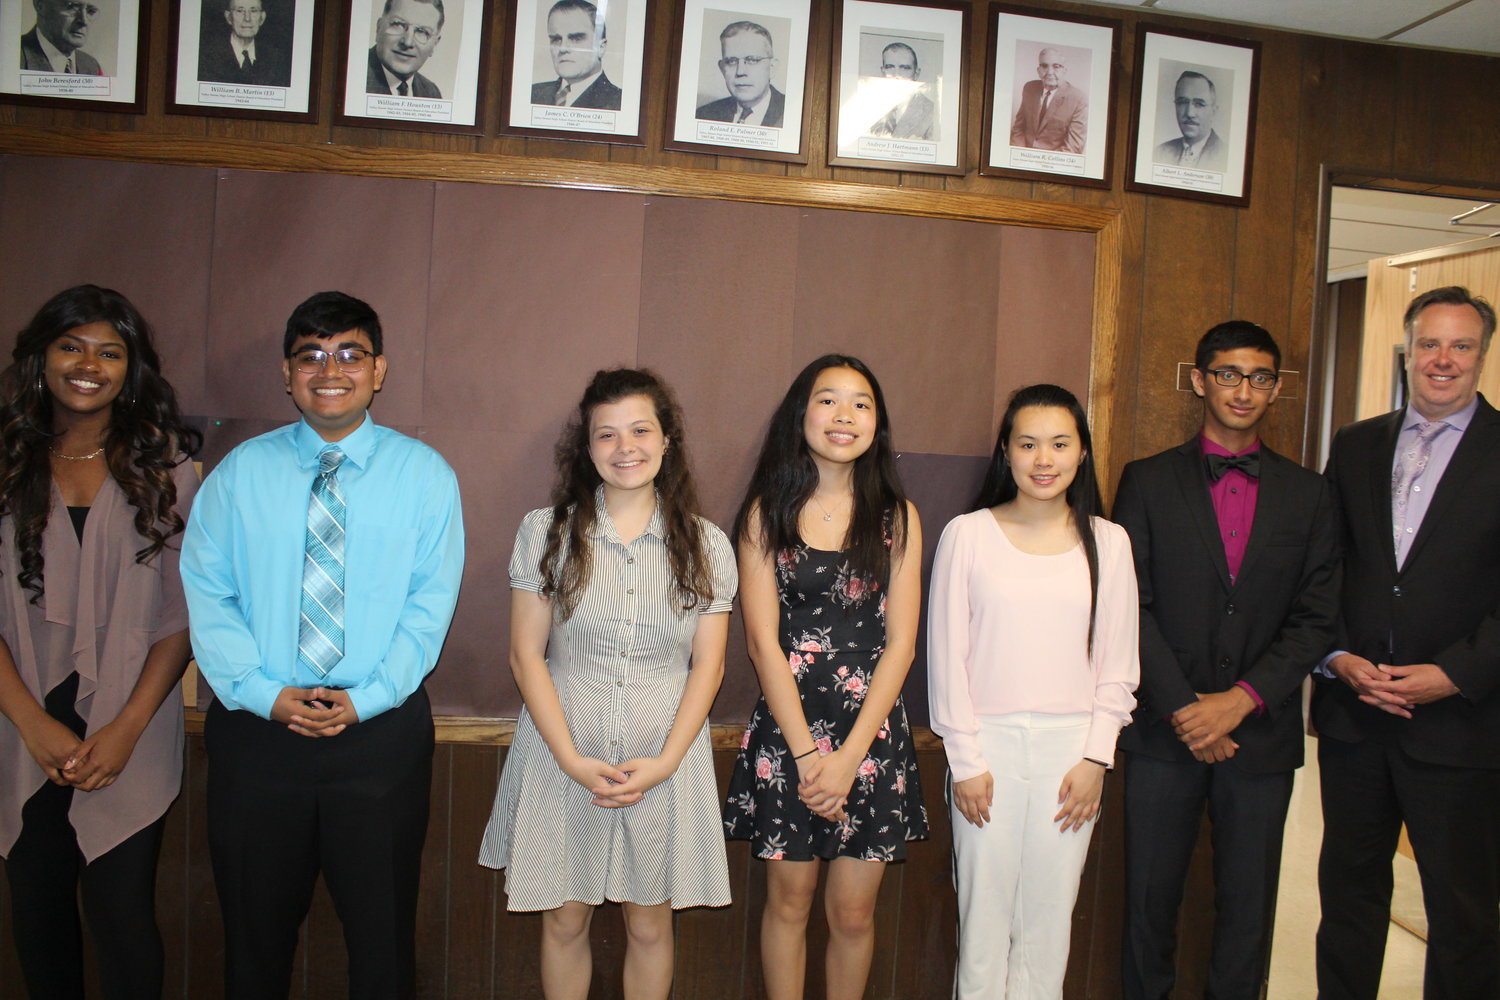 Sophia Steele, far left, Nader Ahmed, Amelia Cossentino, Kailyn Fan, Anne Hwang and Joshua Rajan are the top students in their respective high school senior classes. They were with Superintendent Bill Heidenreich.